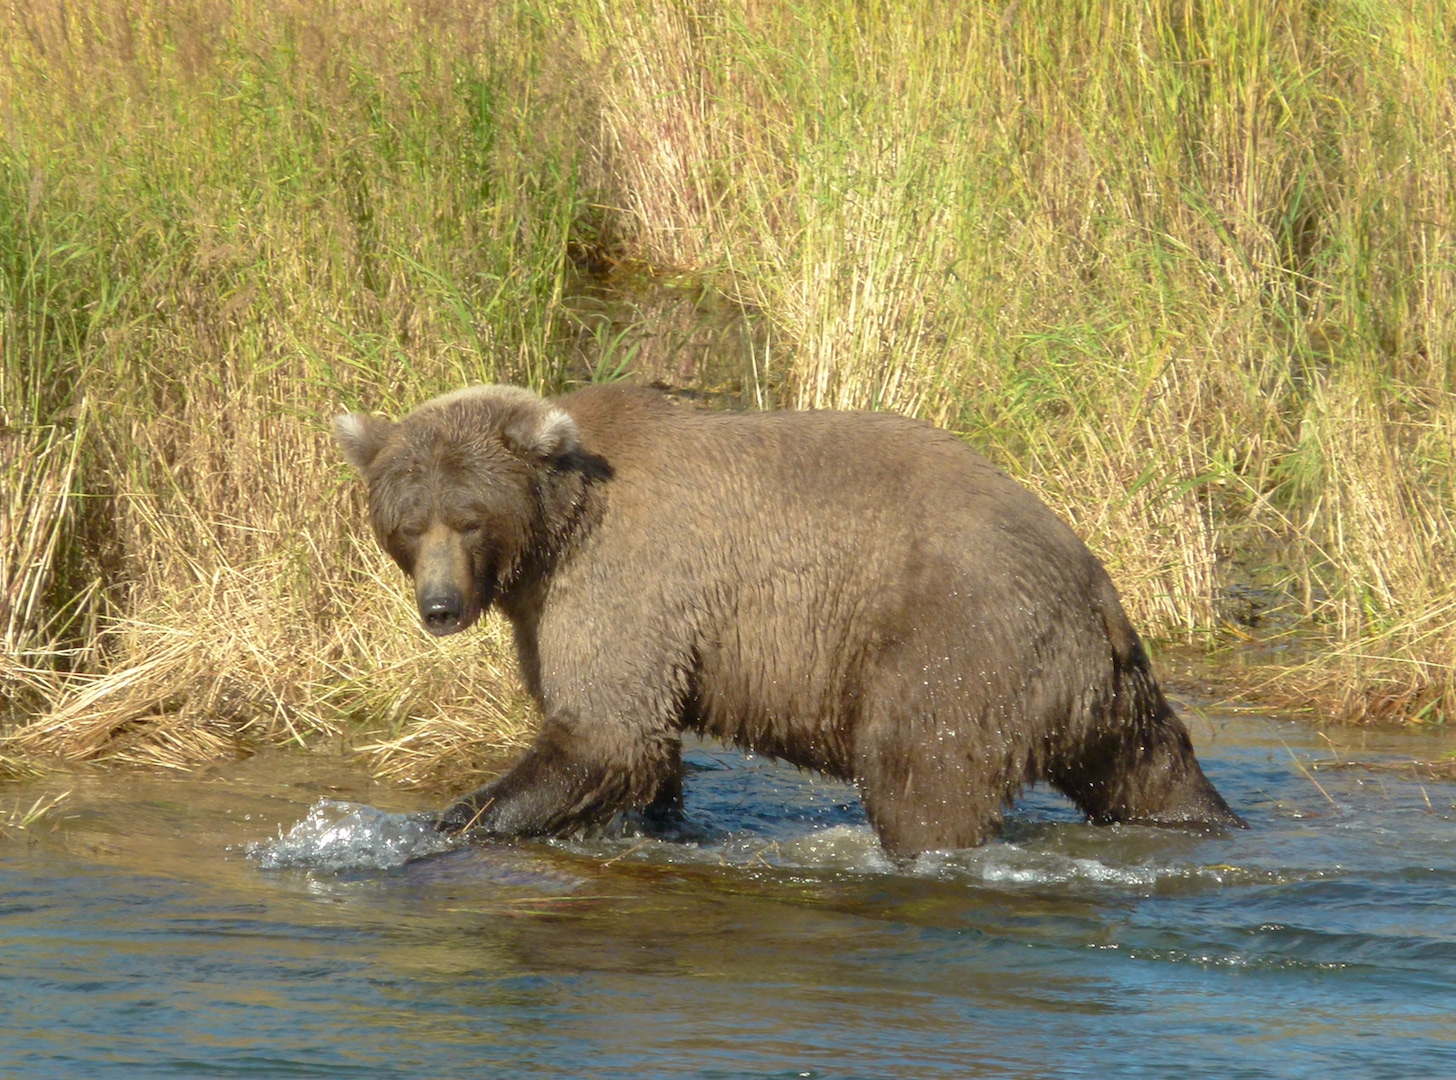 bear walking in water next to grassy bank